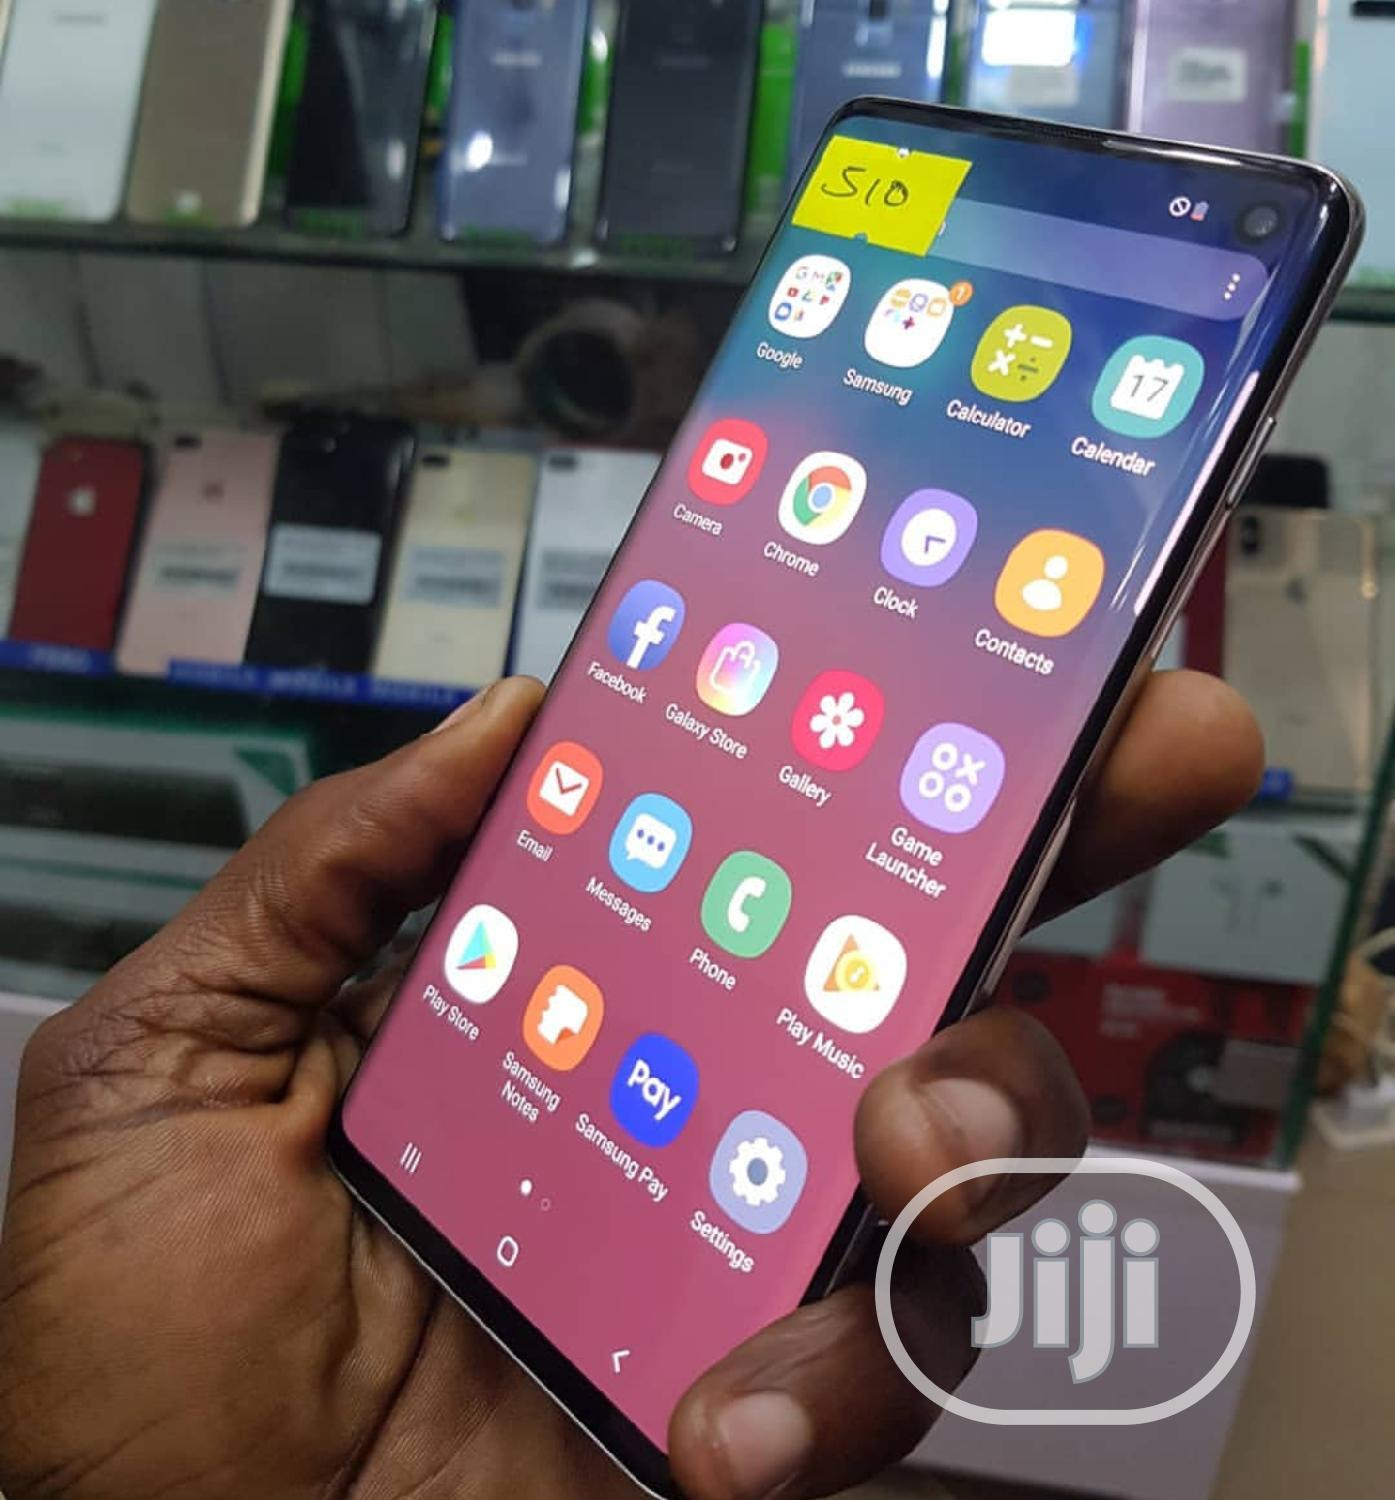 Samsung Galaxy S10 128 GB | Mobile Phones for sale in Ikeja, Lagos State, Nigeria